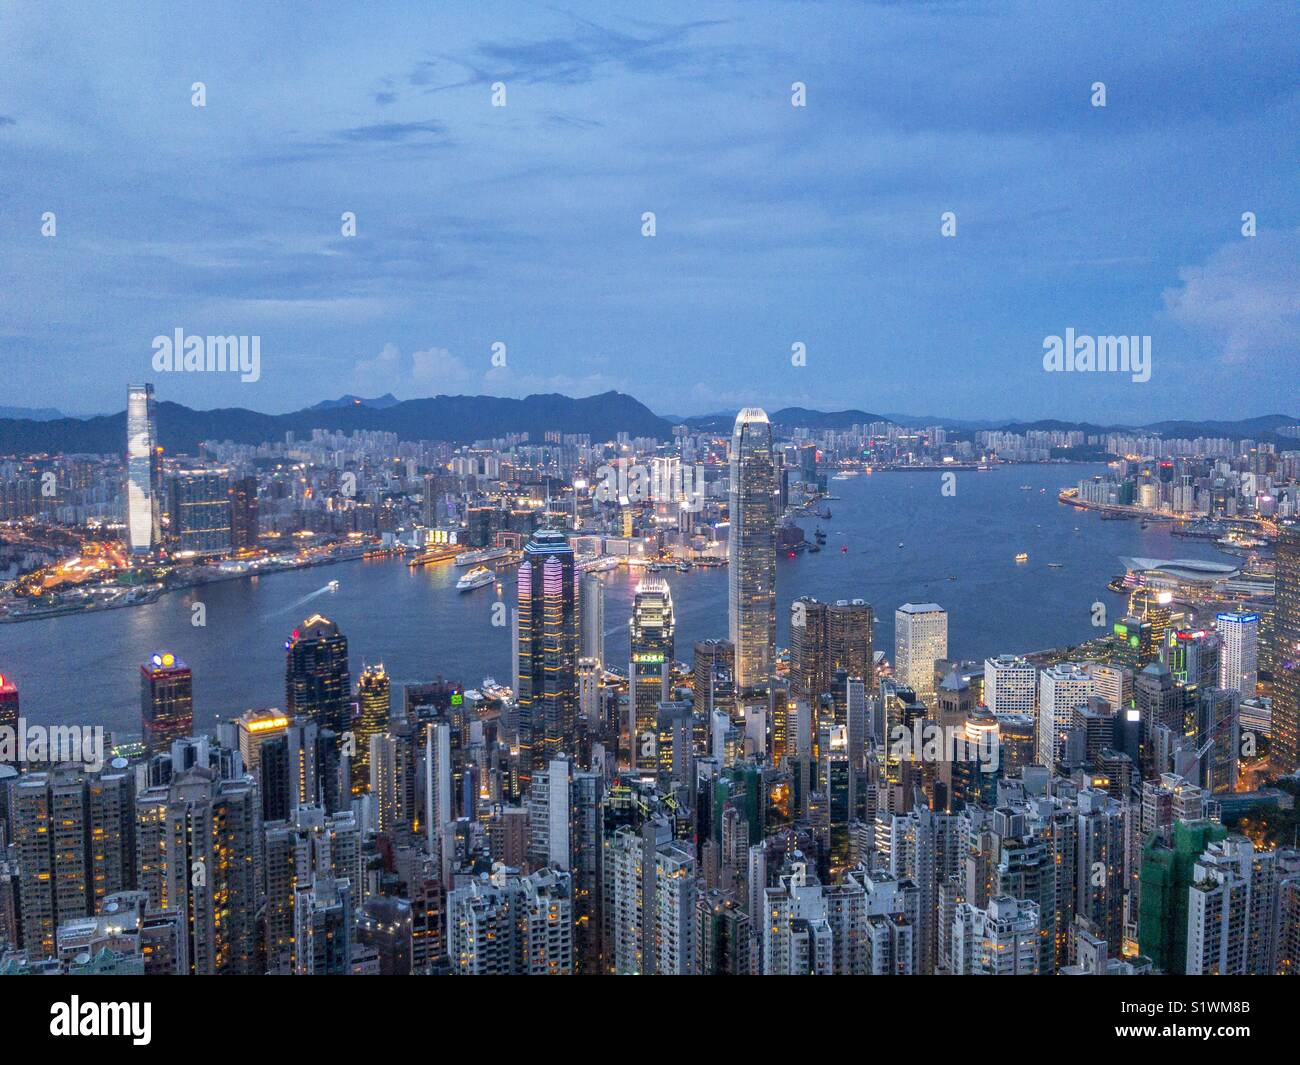 Hong Kong Victoria Harbour view from the Peak - Stock Image